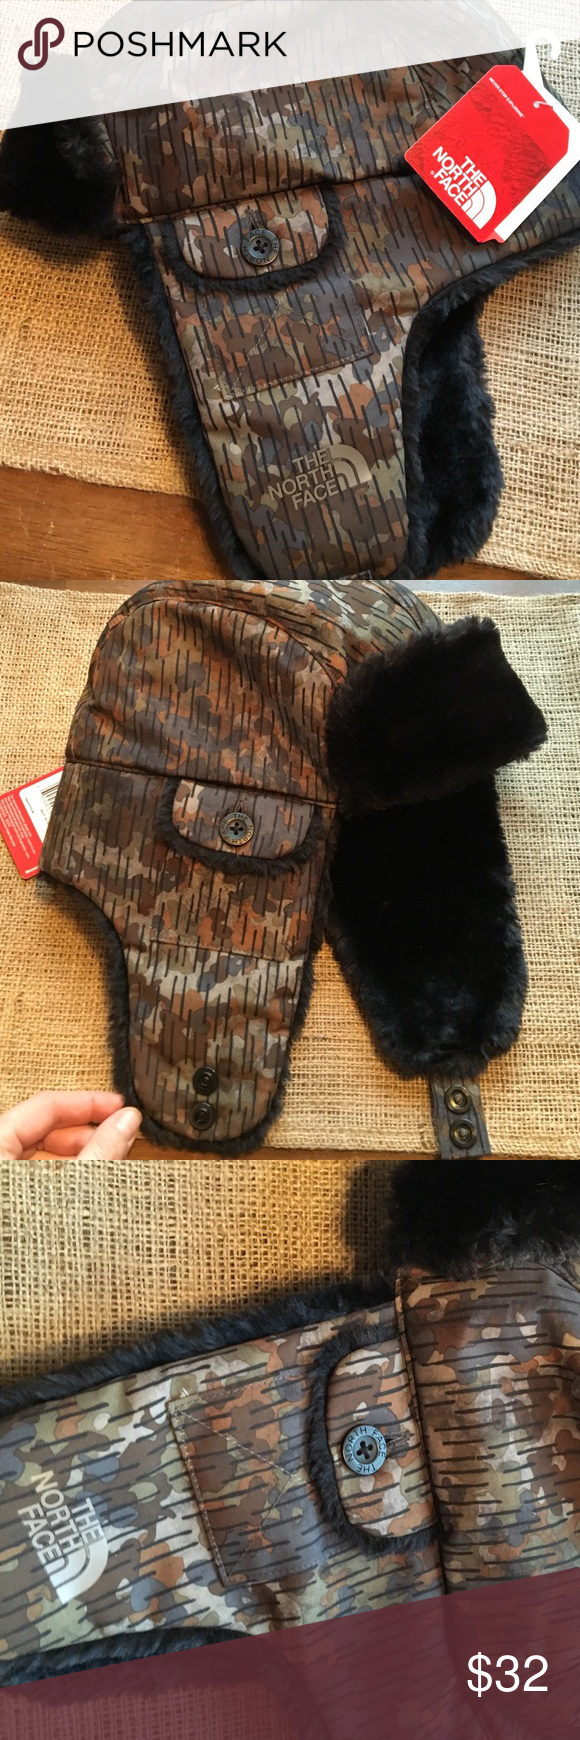 Nwt Men s North Face trapper hat Perfect hat to brave the winter weather!  Bought off 5589706ea3e